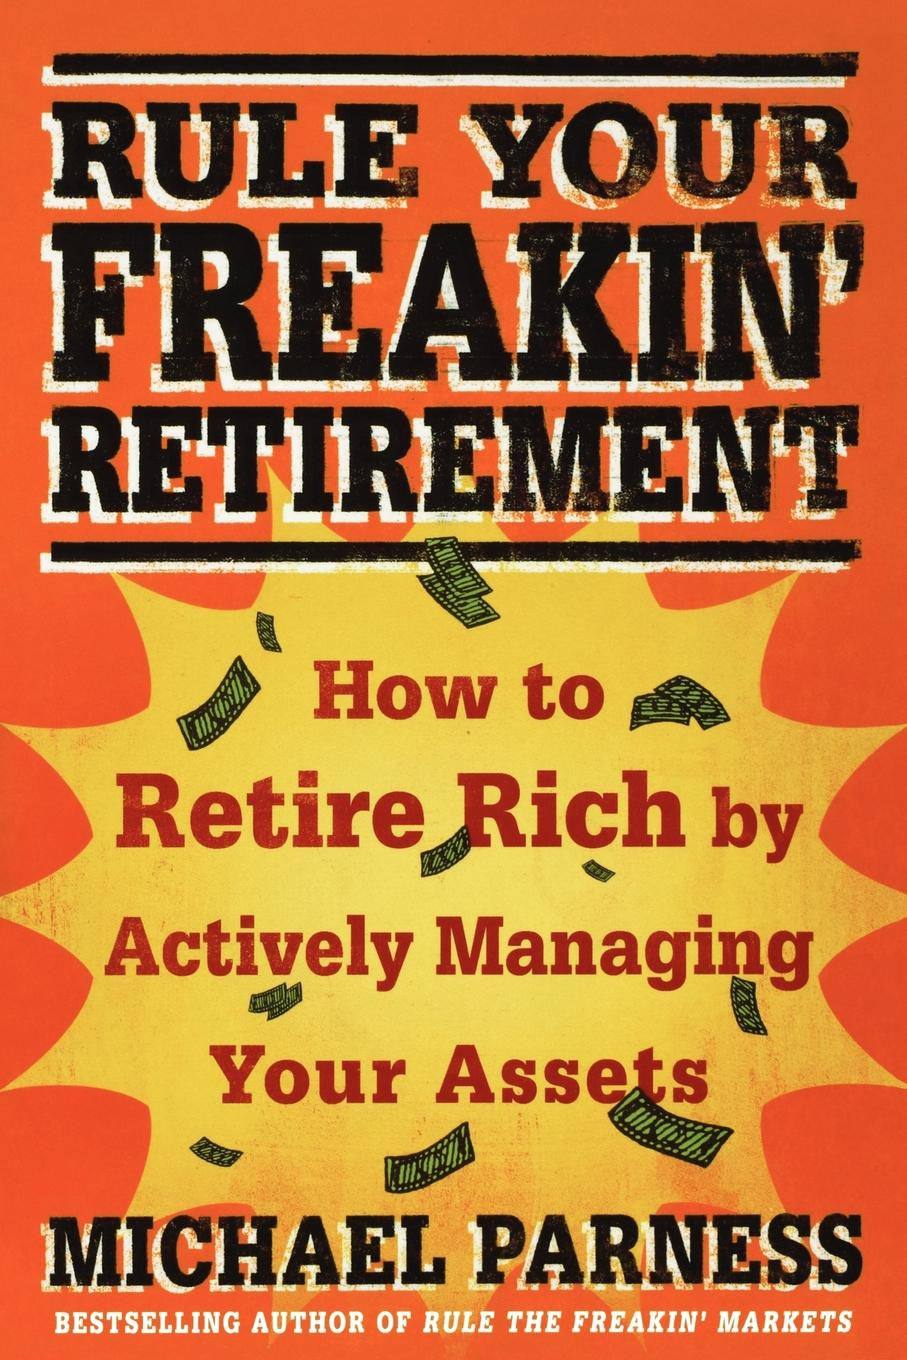 Michael Parness Rule Your Freakin' Retirement. How to Retire Rich by Actively Managing Your Assets bill roiter beyond work how accomplished people retire successfully